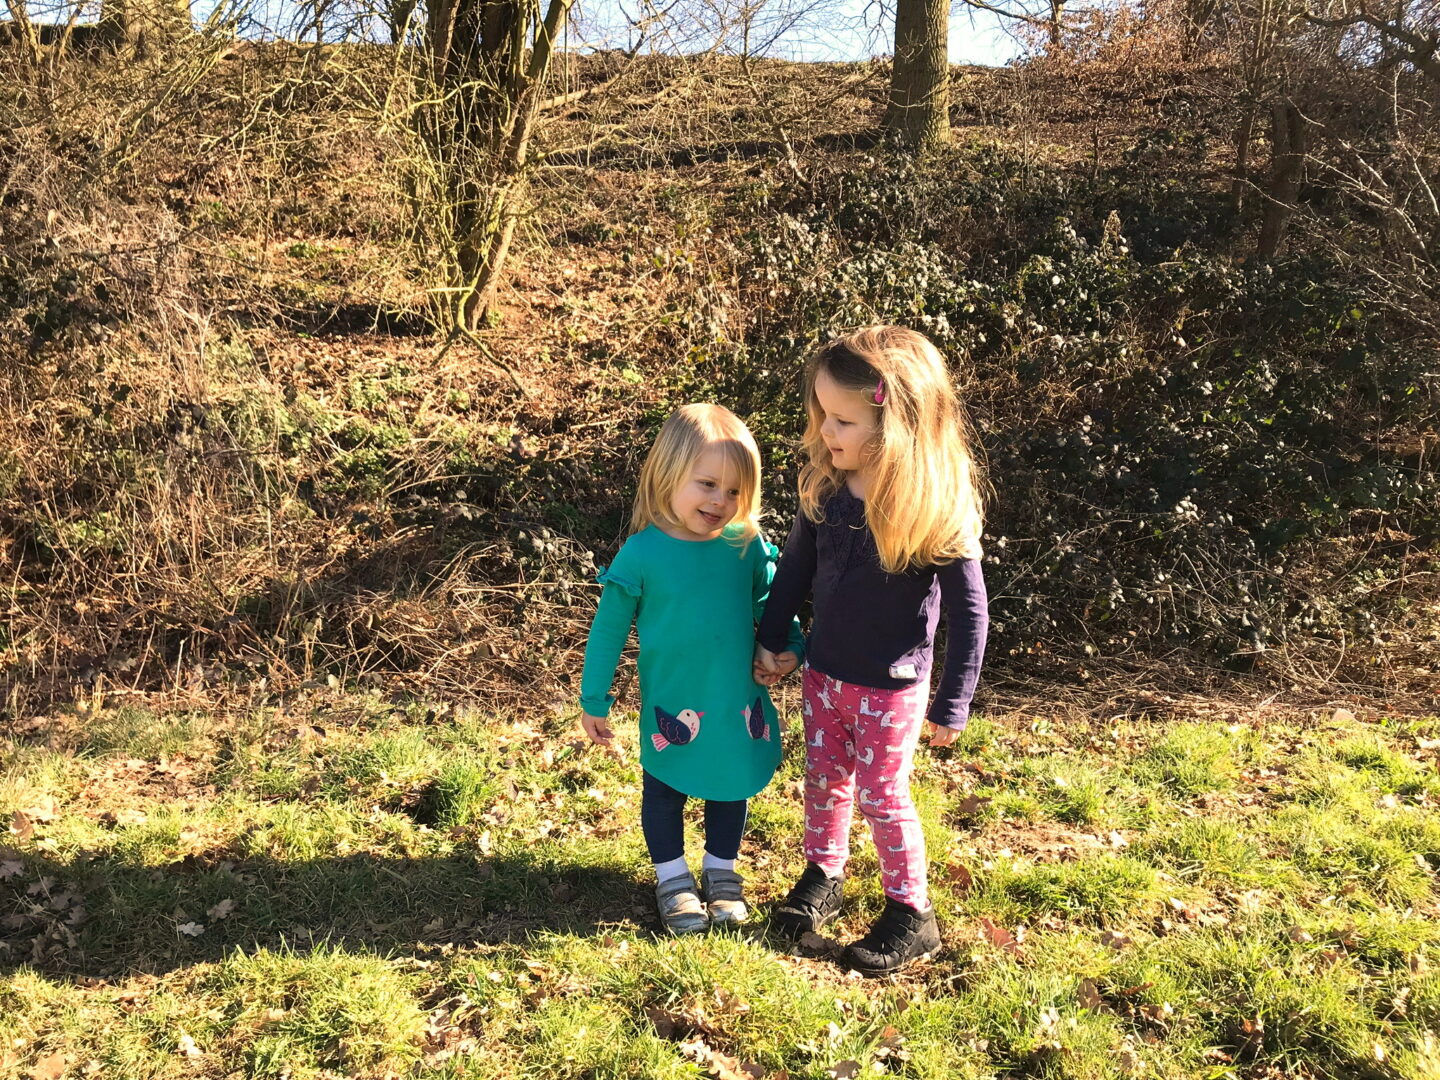 Two young sisters standing in a field holding hands in sunshine